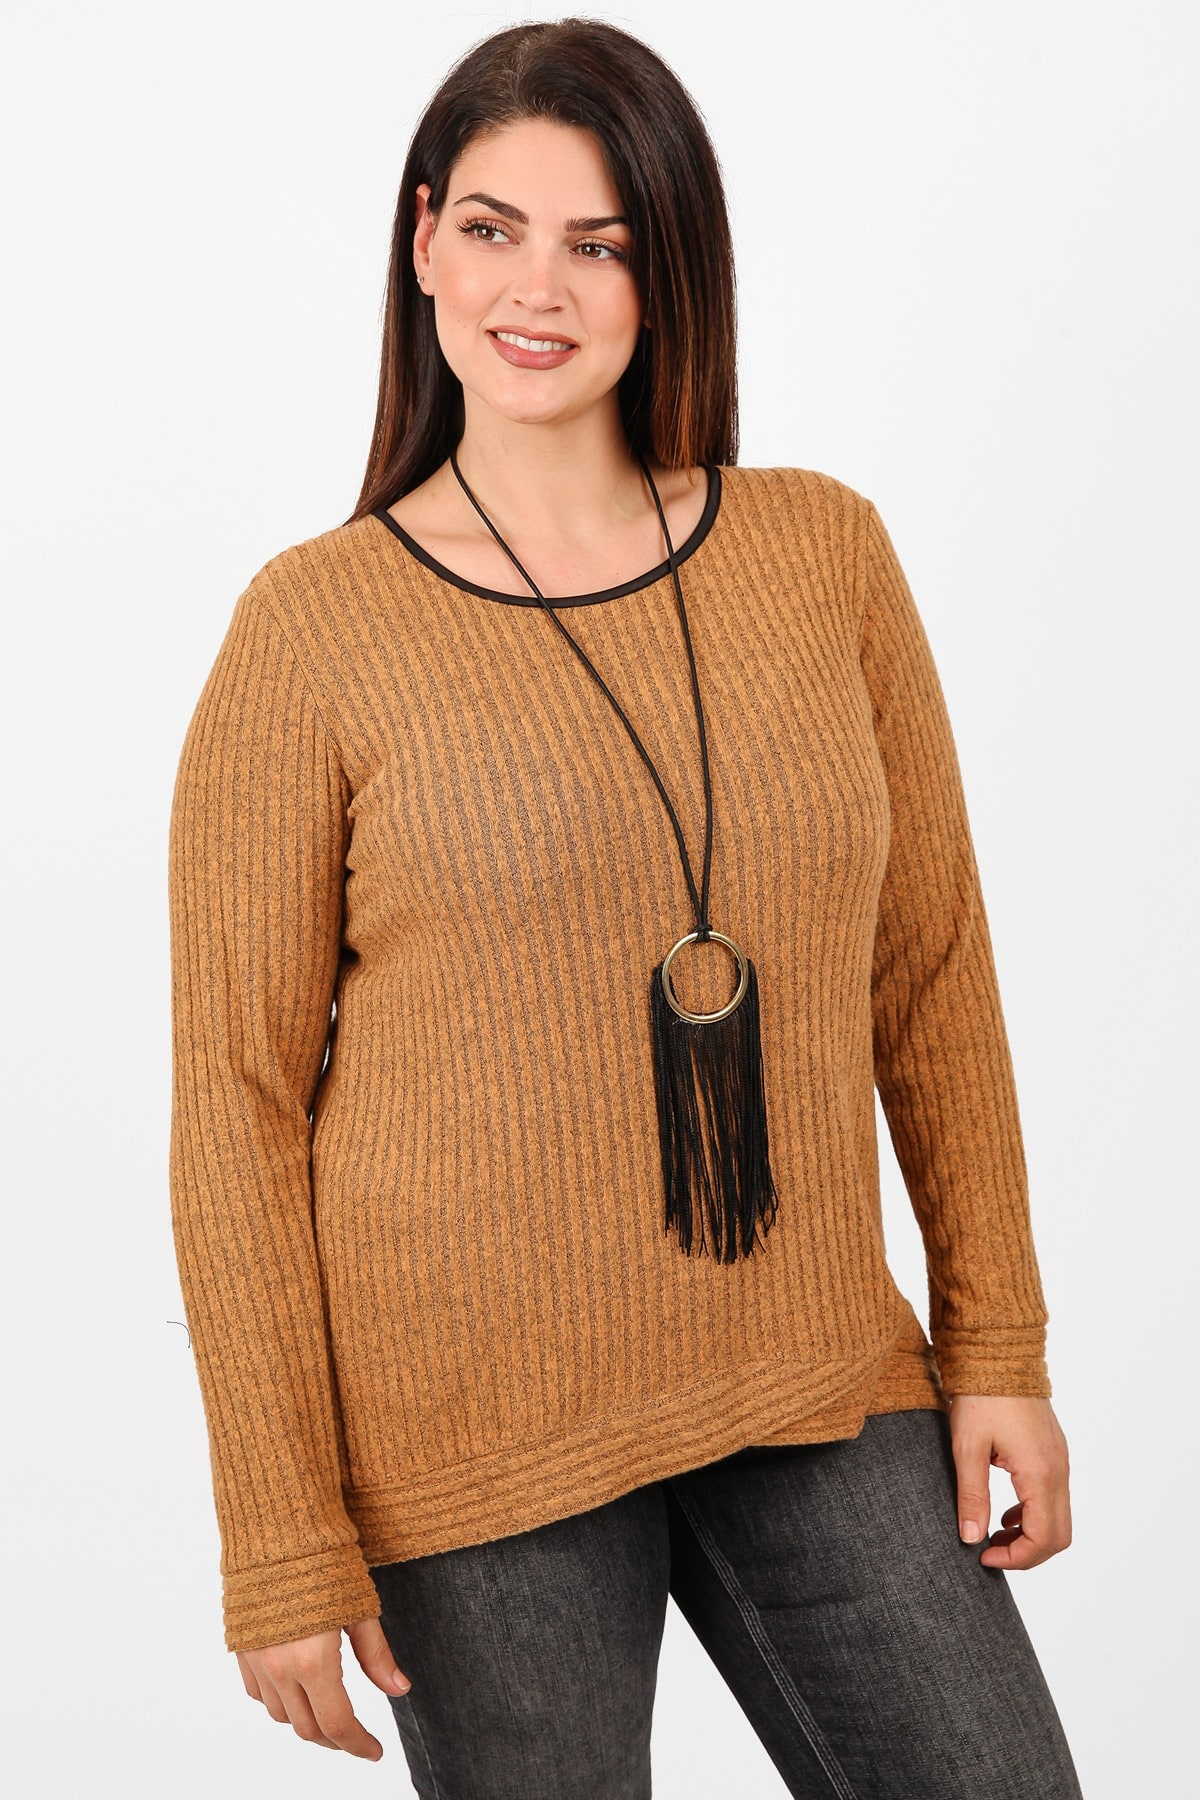 Knit blouse with hi-lo hem and pendand